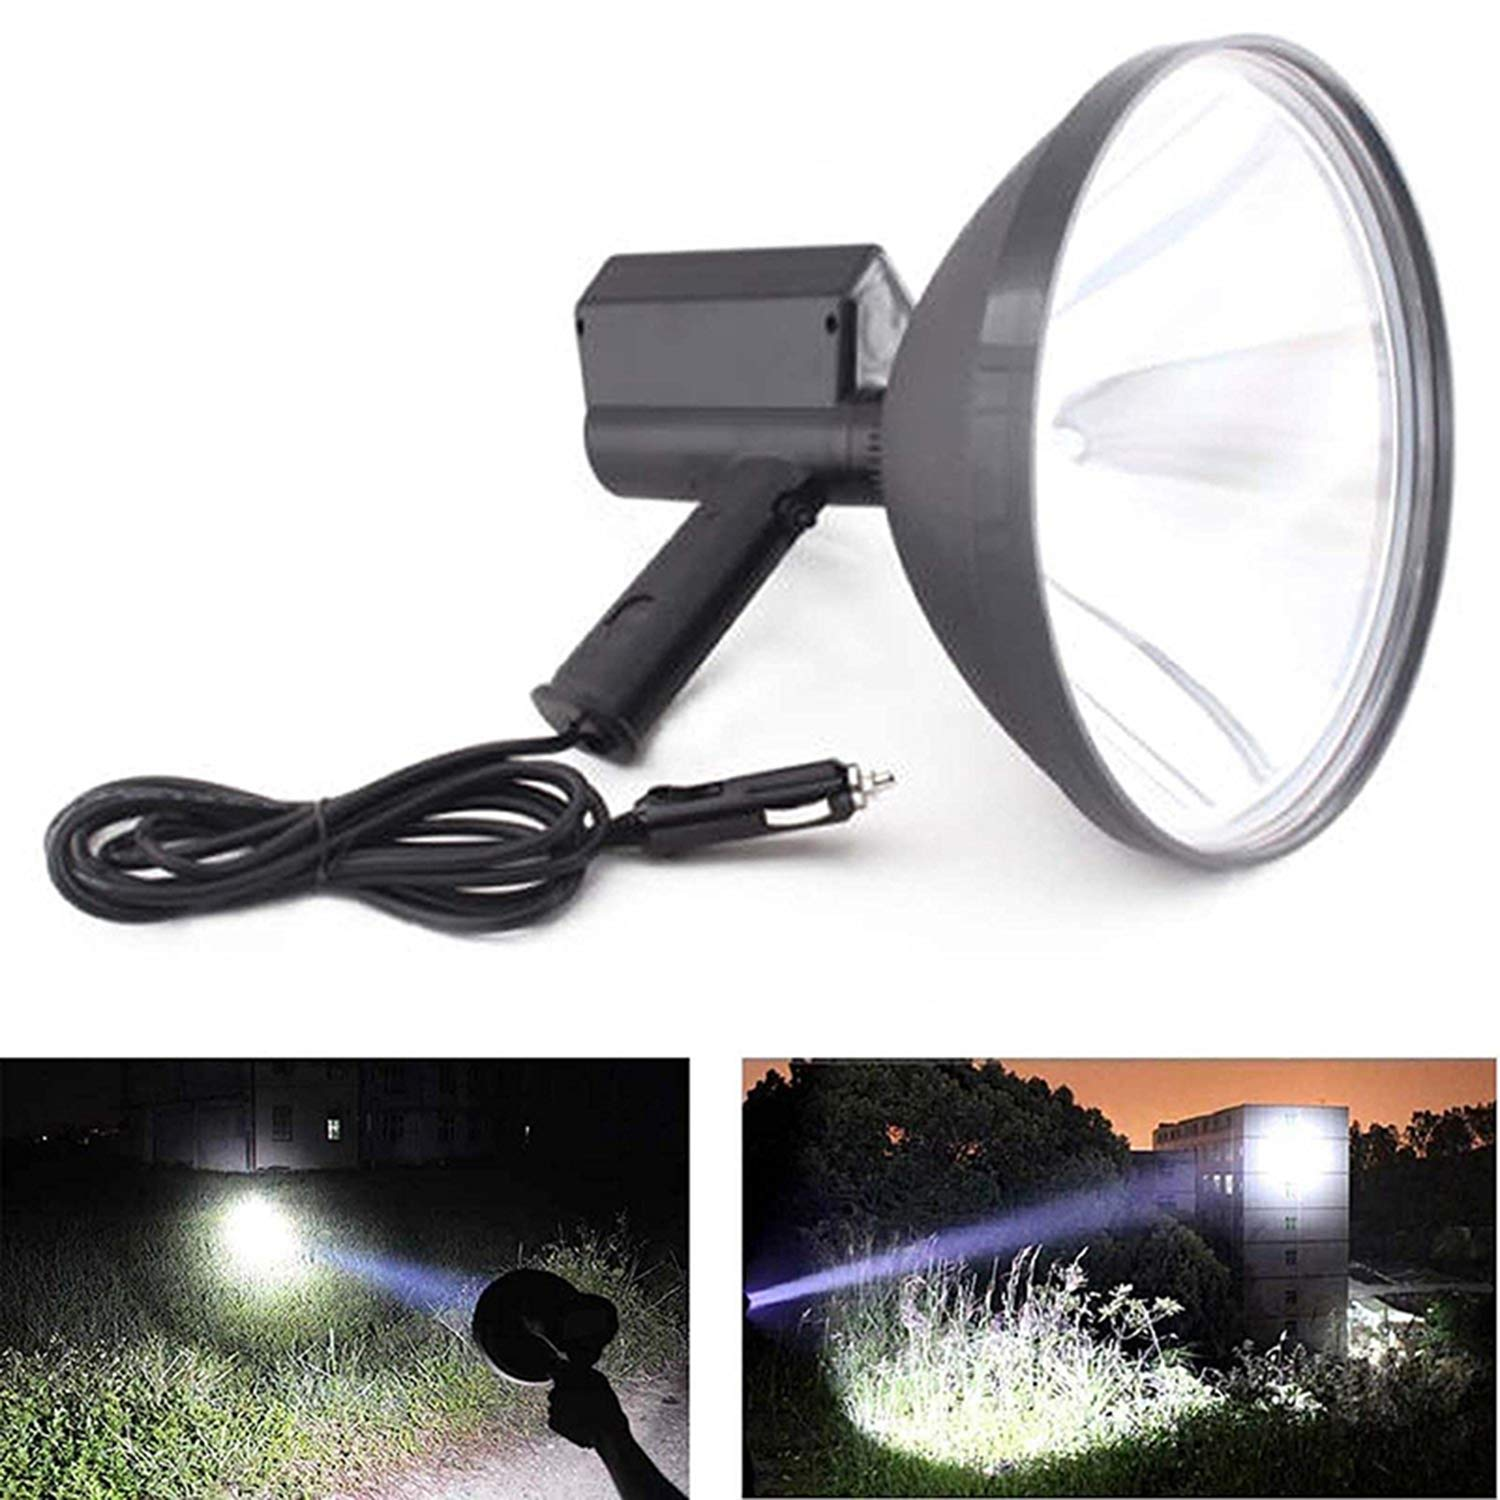 9 inch Portable Handheld HID Xenon Lamp 1000W 245mm Outdoor Camping Hunting Fishing Spot Light Spotlight Brightness by ToGames (Image #2)